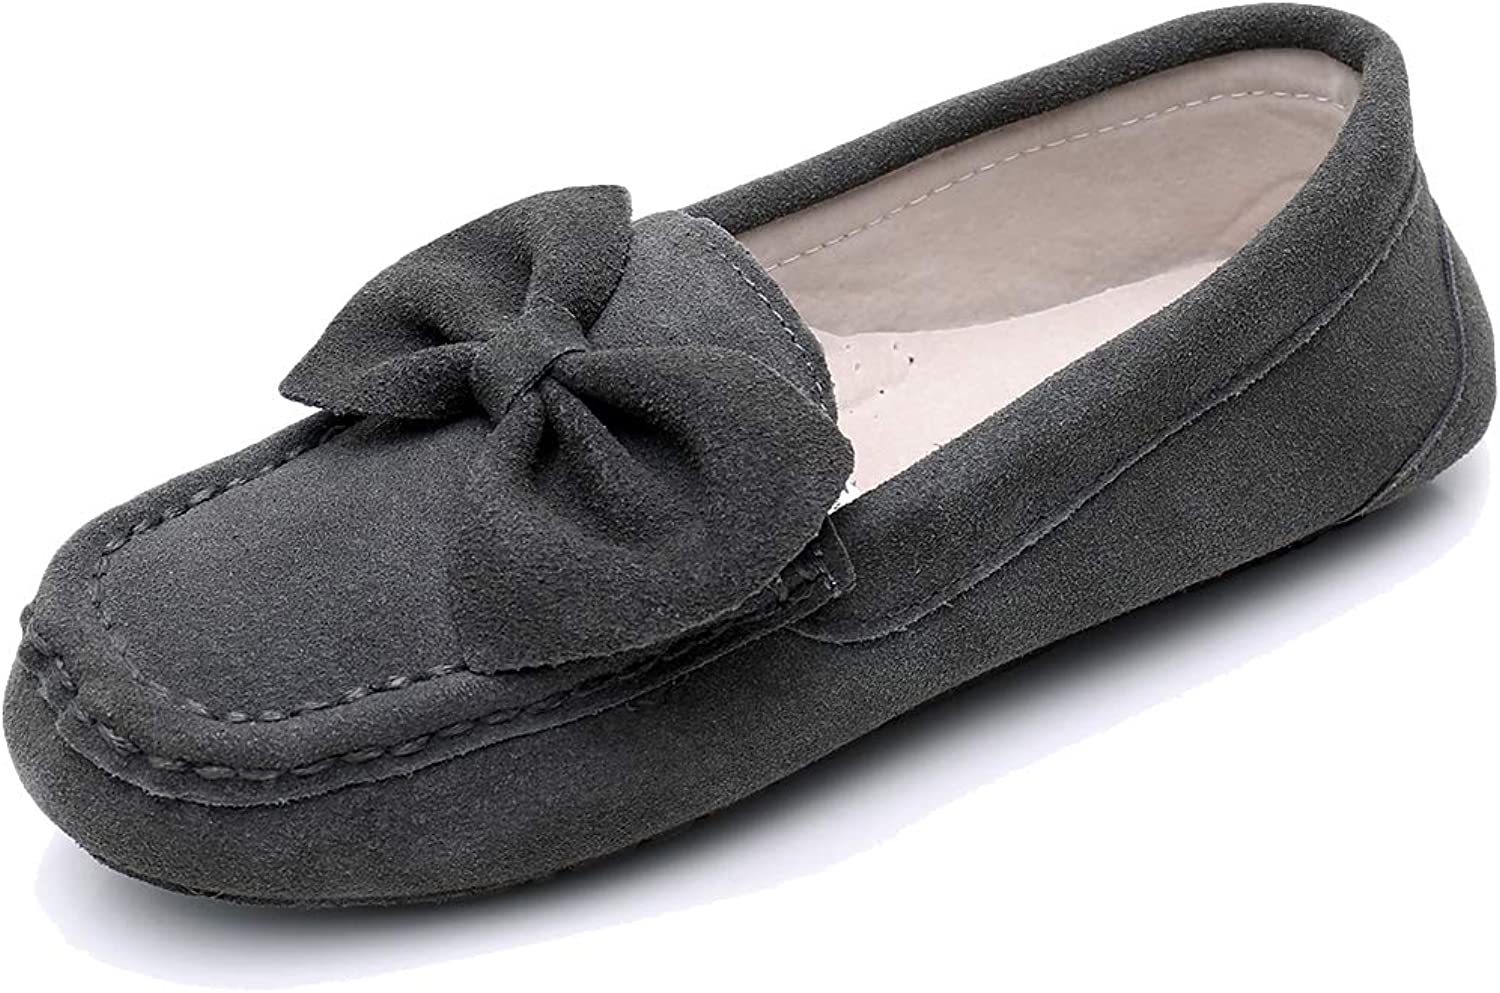 Moccasin Slippers for Women Loafers Casual Flat Suede shoes Womens Moccasin Slippers Comfortable Breathable Driving Slippers Brown